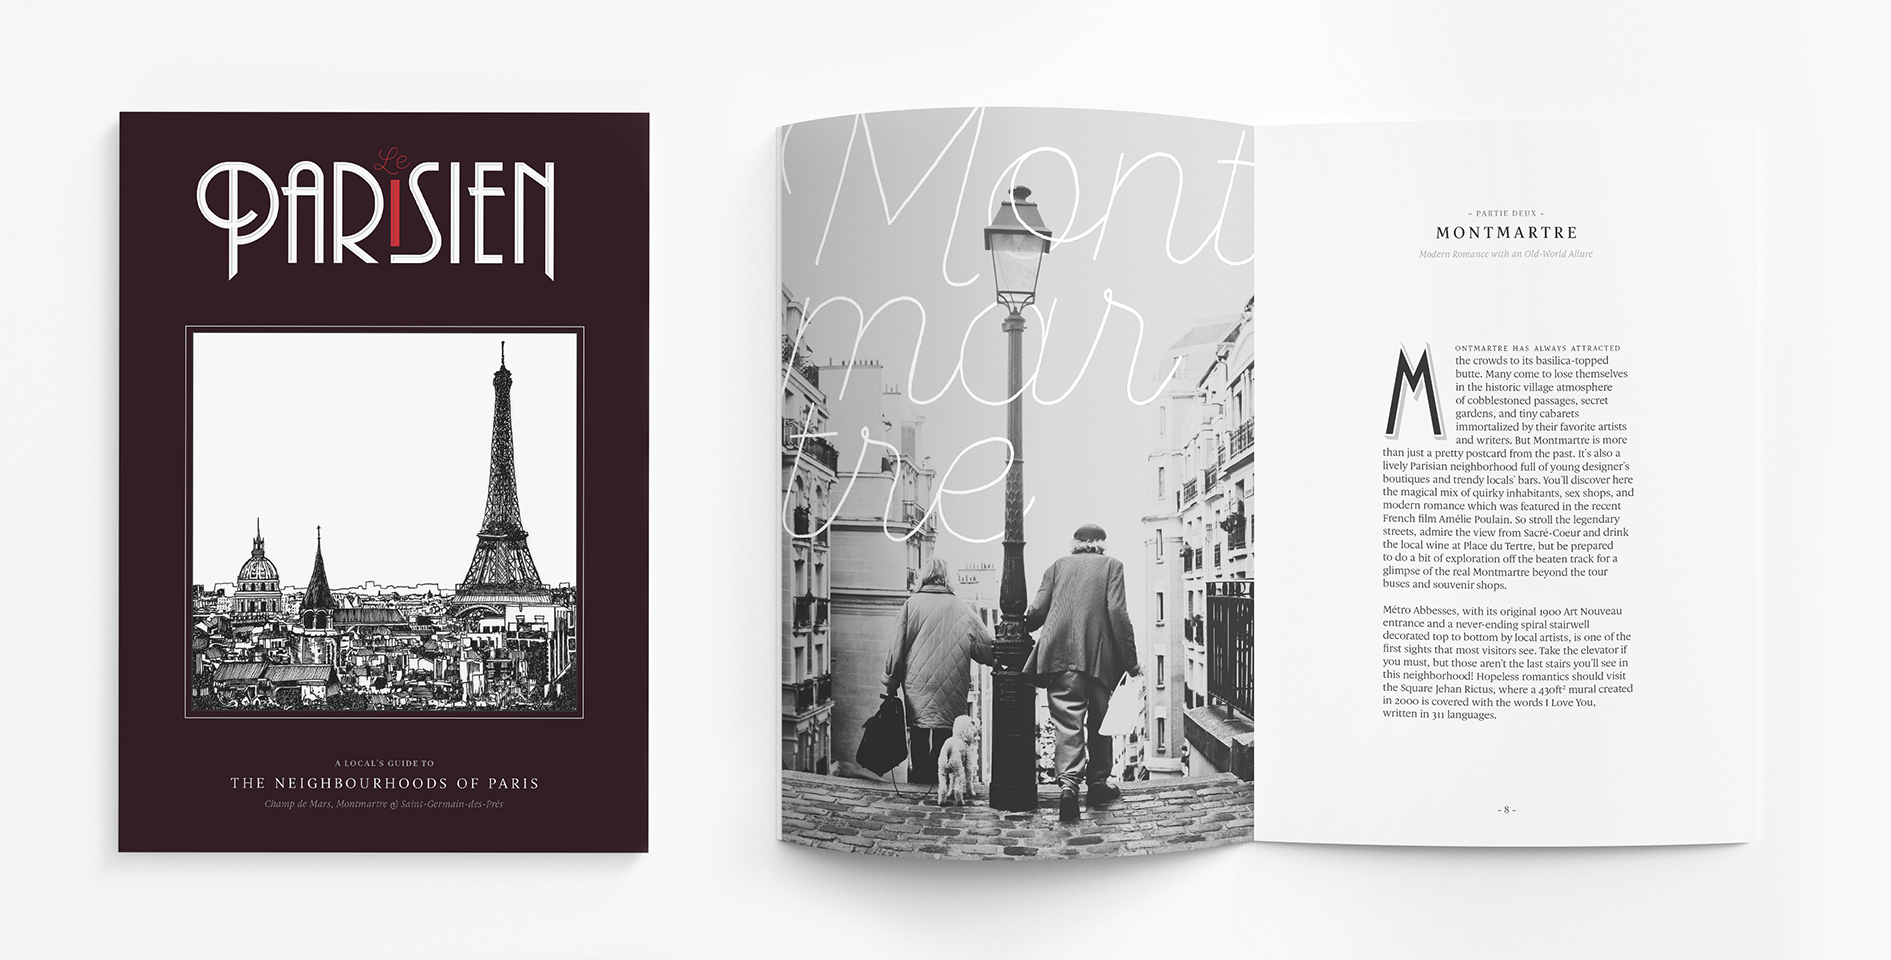 In case I haven't made it crystal clear by now, I love Paris. My love of type sort of goes hand in hand with my favourite city — in second year I designed a guidebook that featured three of my favourite Parisian neighbourhoods, and typography was a big driver in how I conveyed a feeling of romance and nostalgia within the layout.